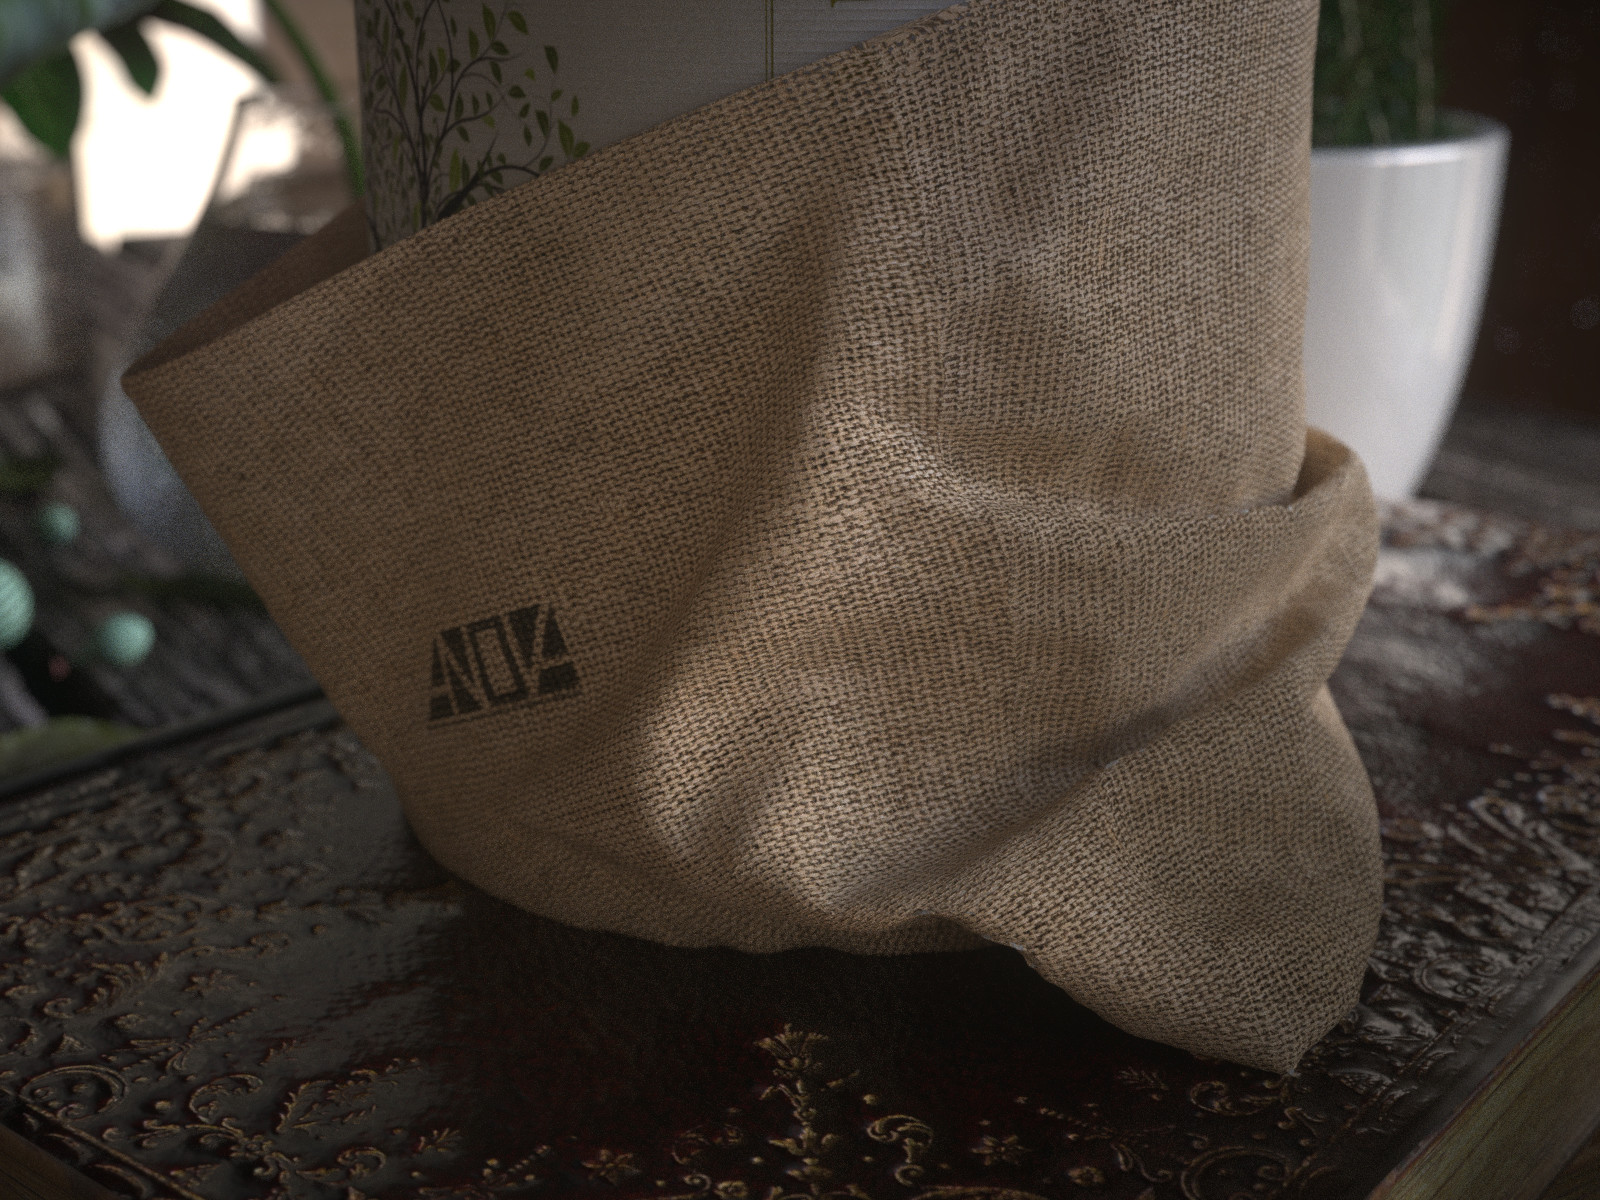 Sack Modeling for Still Life Project